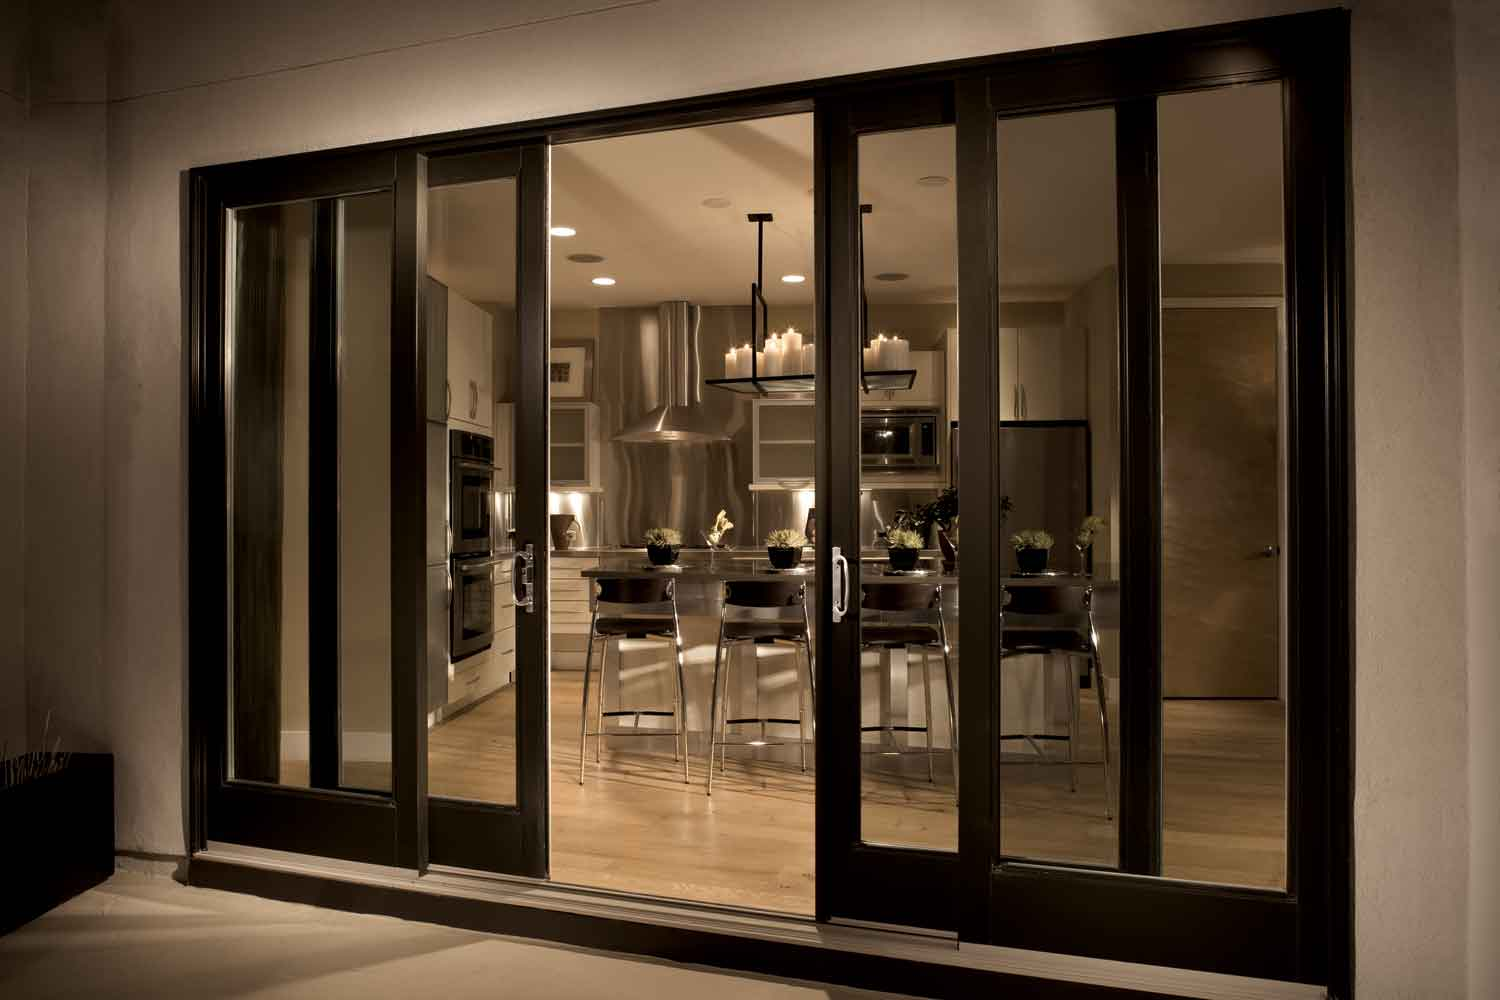 Sliding french door design ipc358 interior french door for Inside sliding doors